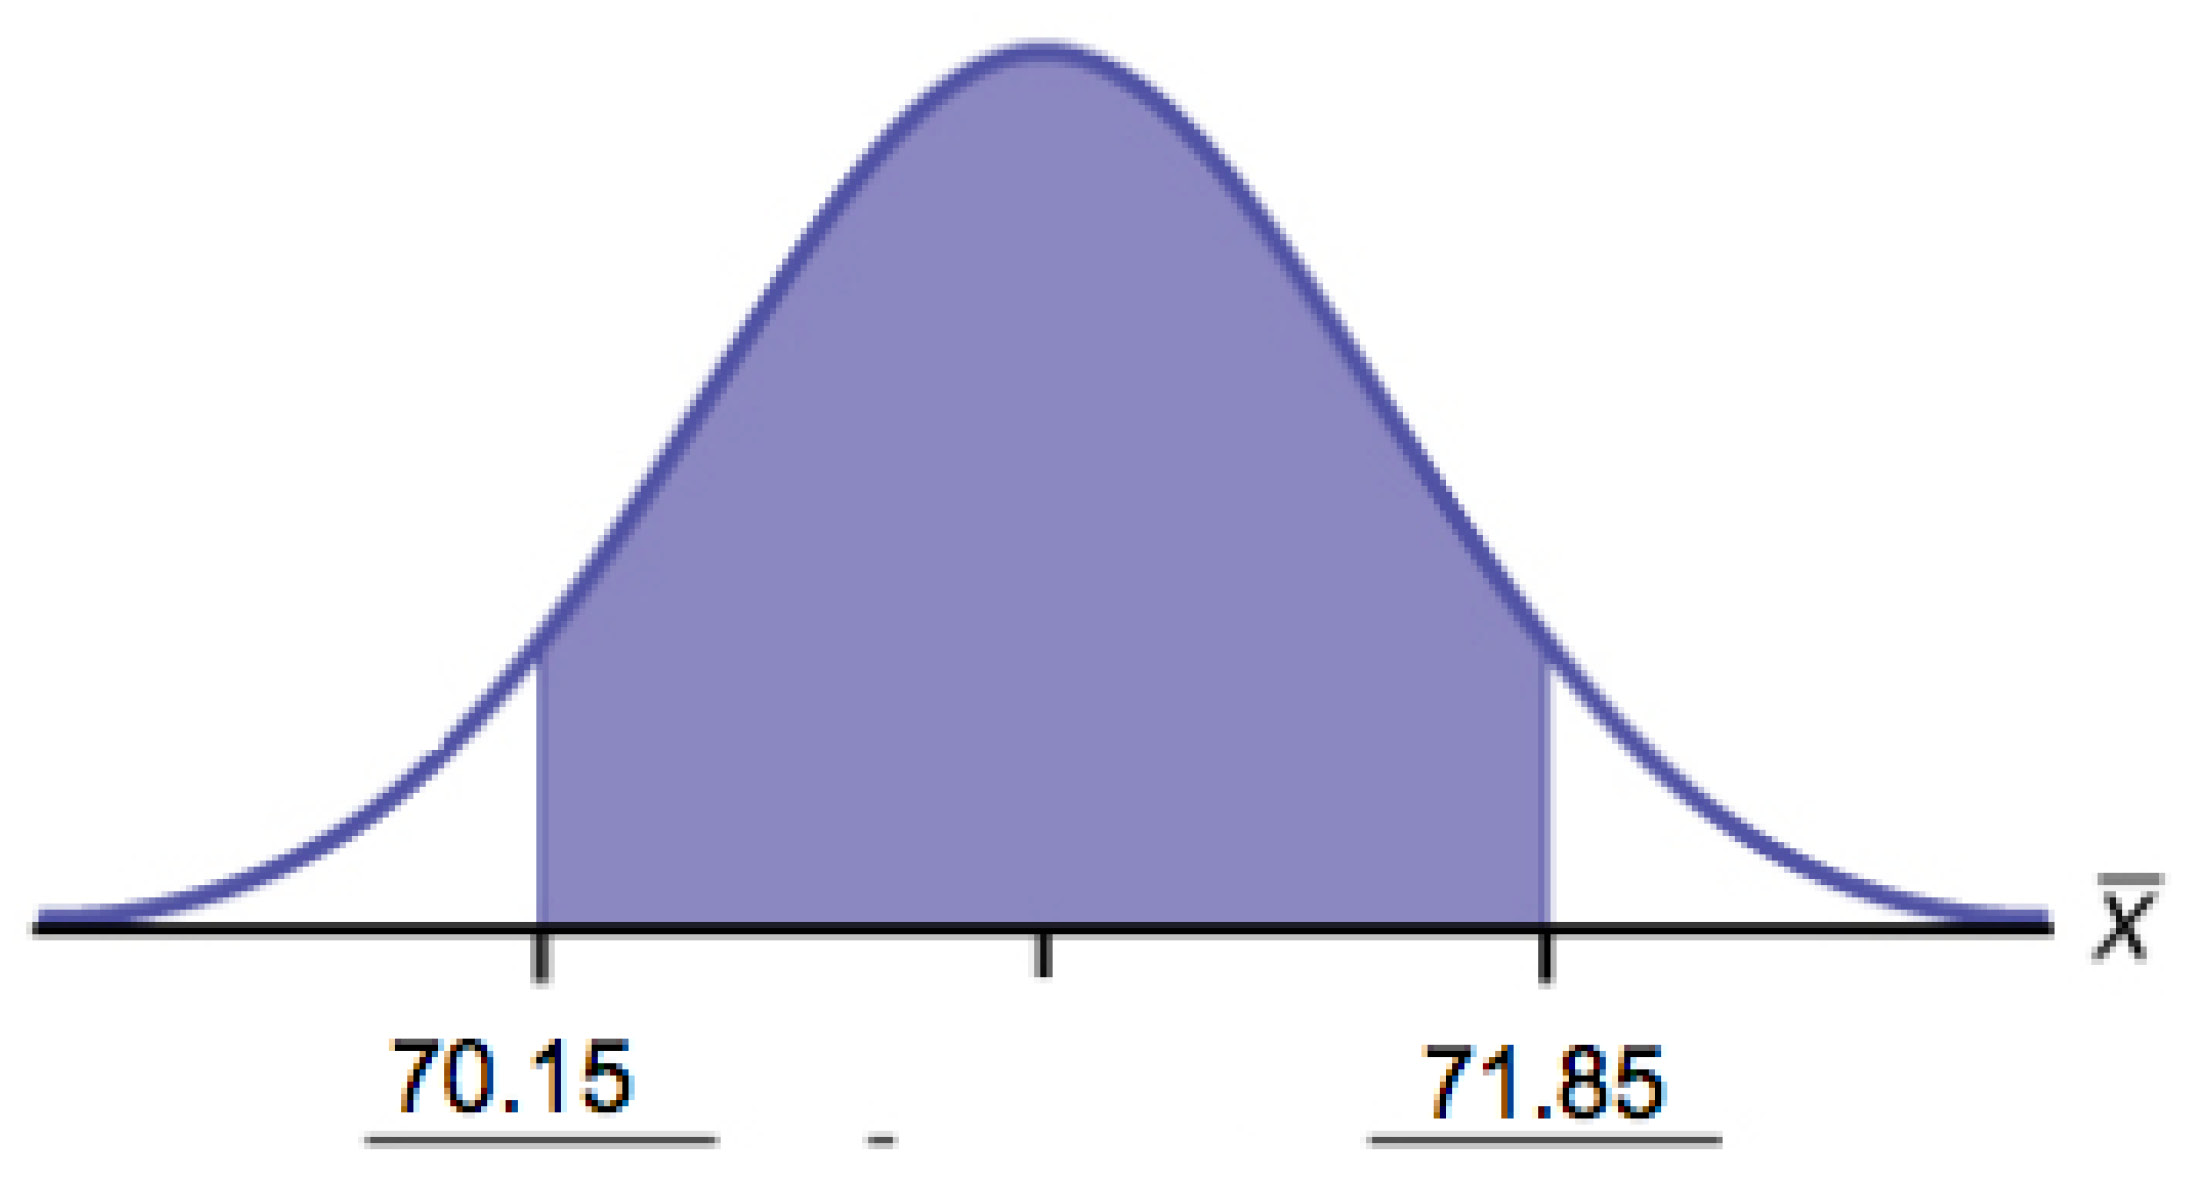 This is a normal distribution curve. A central region is shaded between points 70.15 and 71.85.